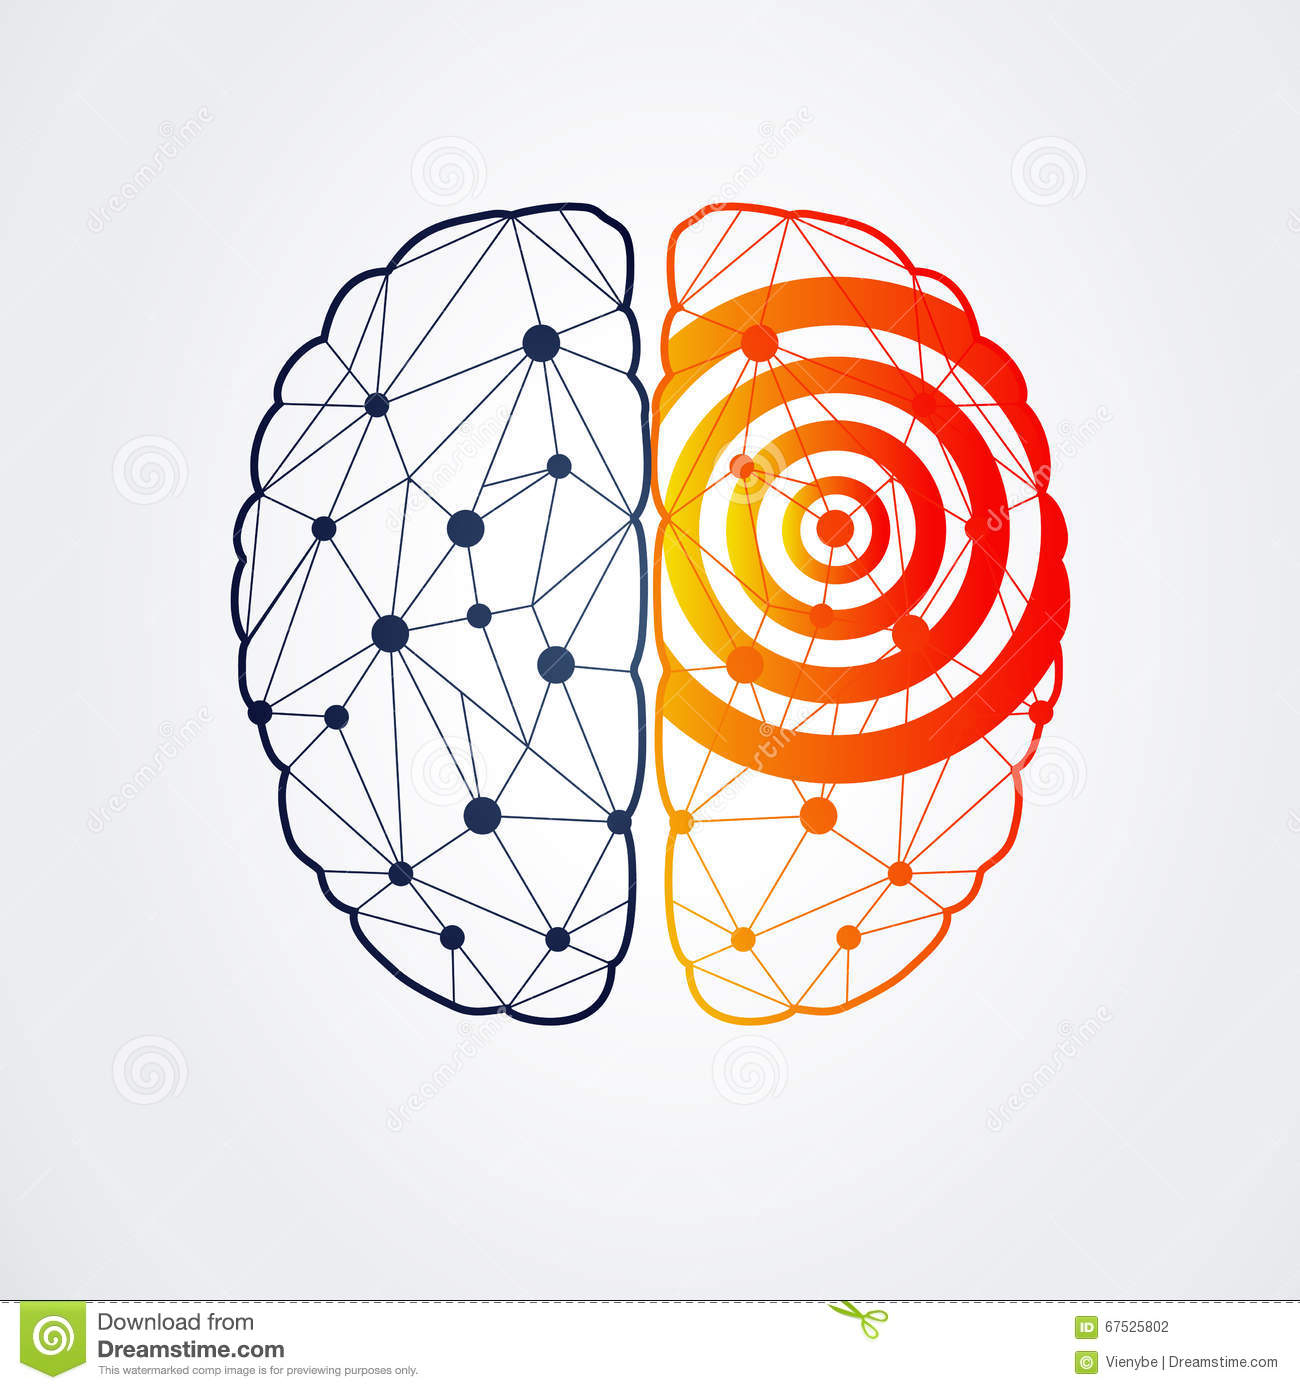 Human Brain With Epilepsy Activity, Vector Illustration Stock.